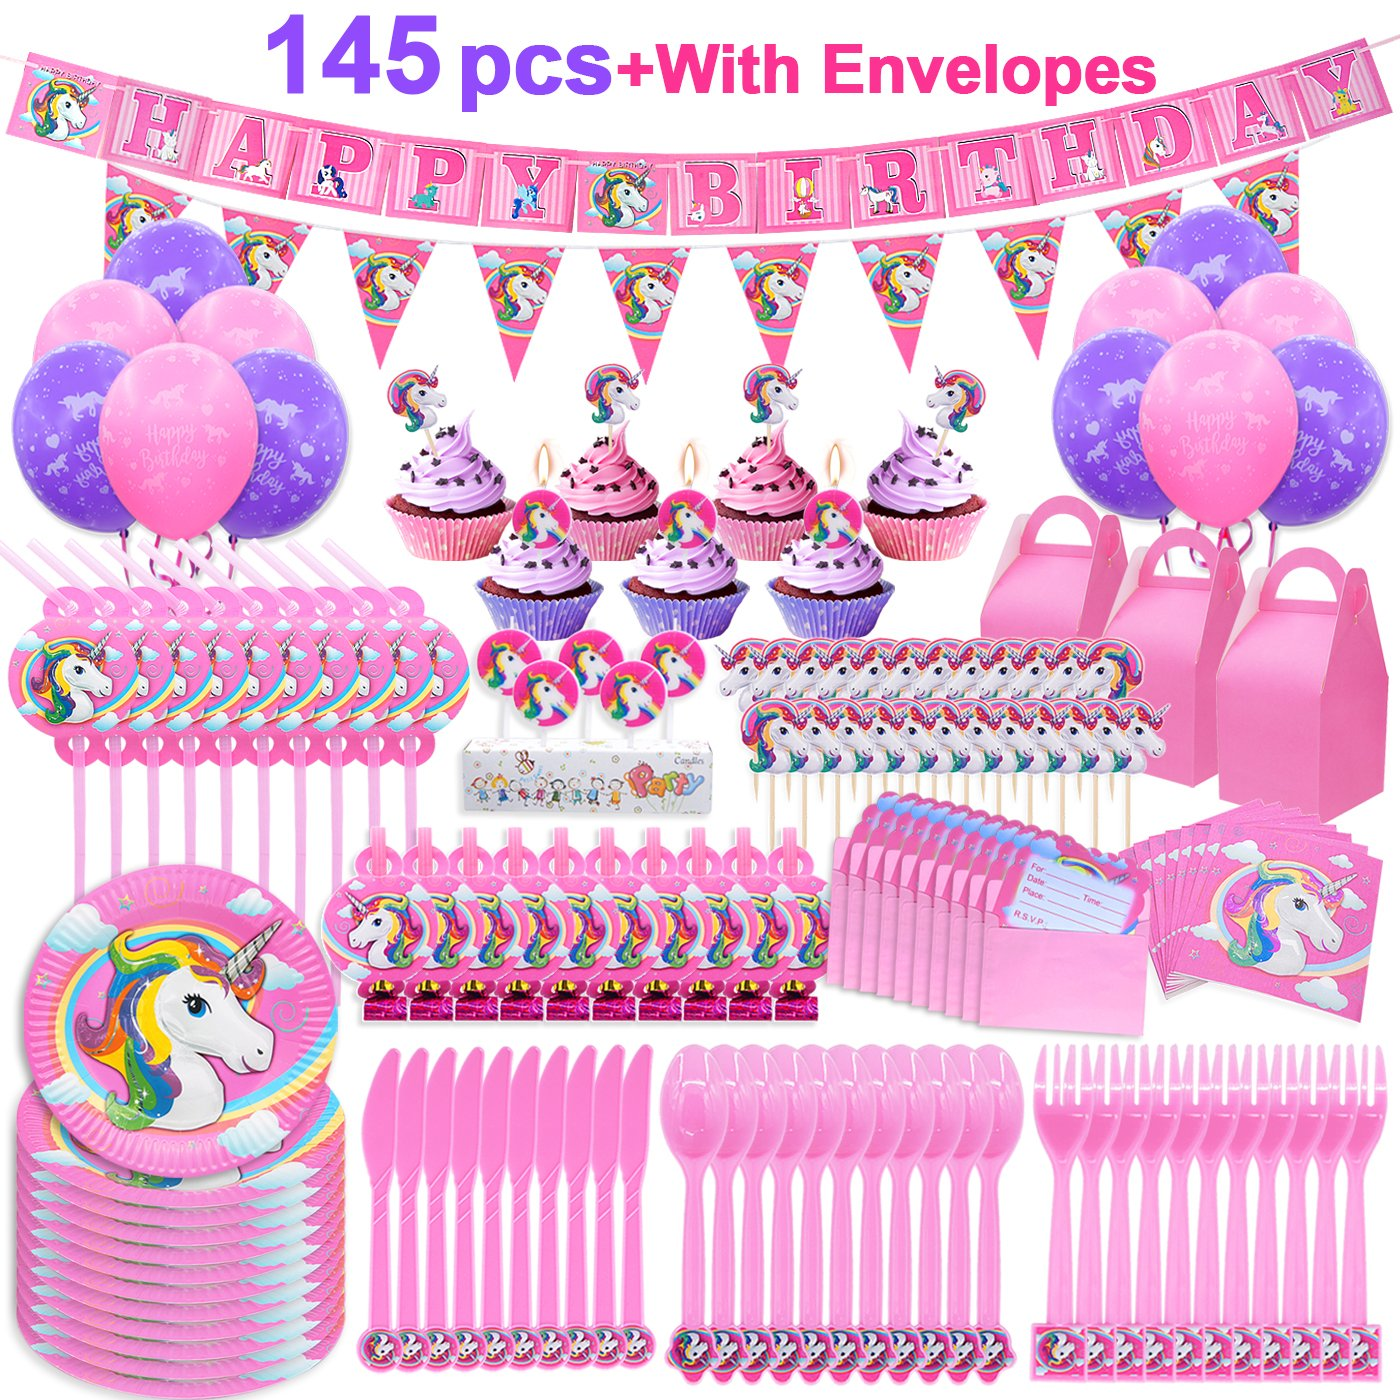 Paper Plates Cake Decorations Banners Invitations Cards Envelopes Knifes Forks Spoons Napkins Straws Music Blowouts Balloons Favor Boxes Candles